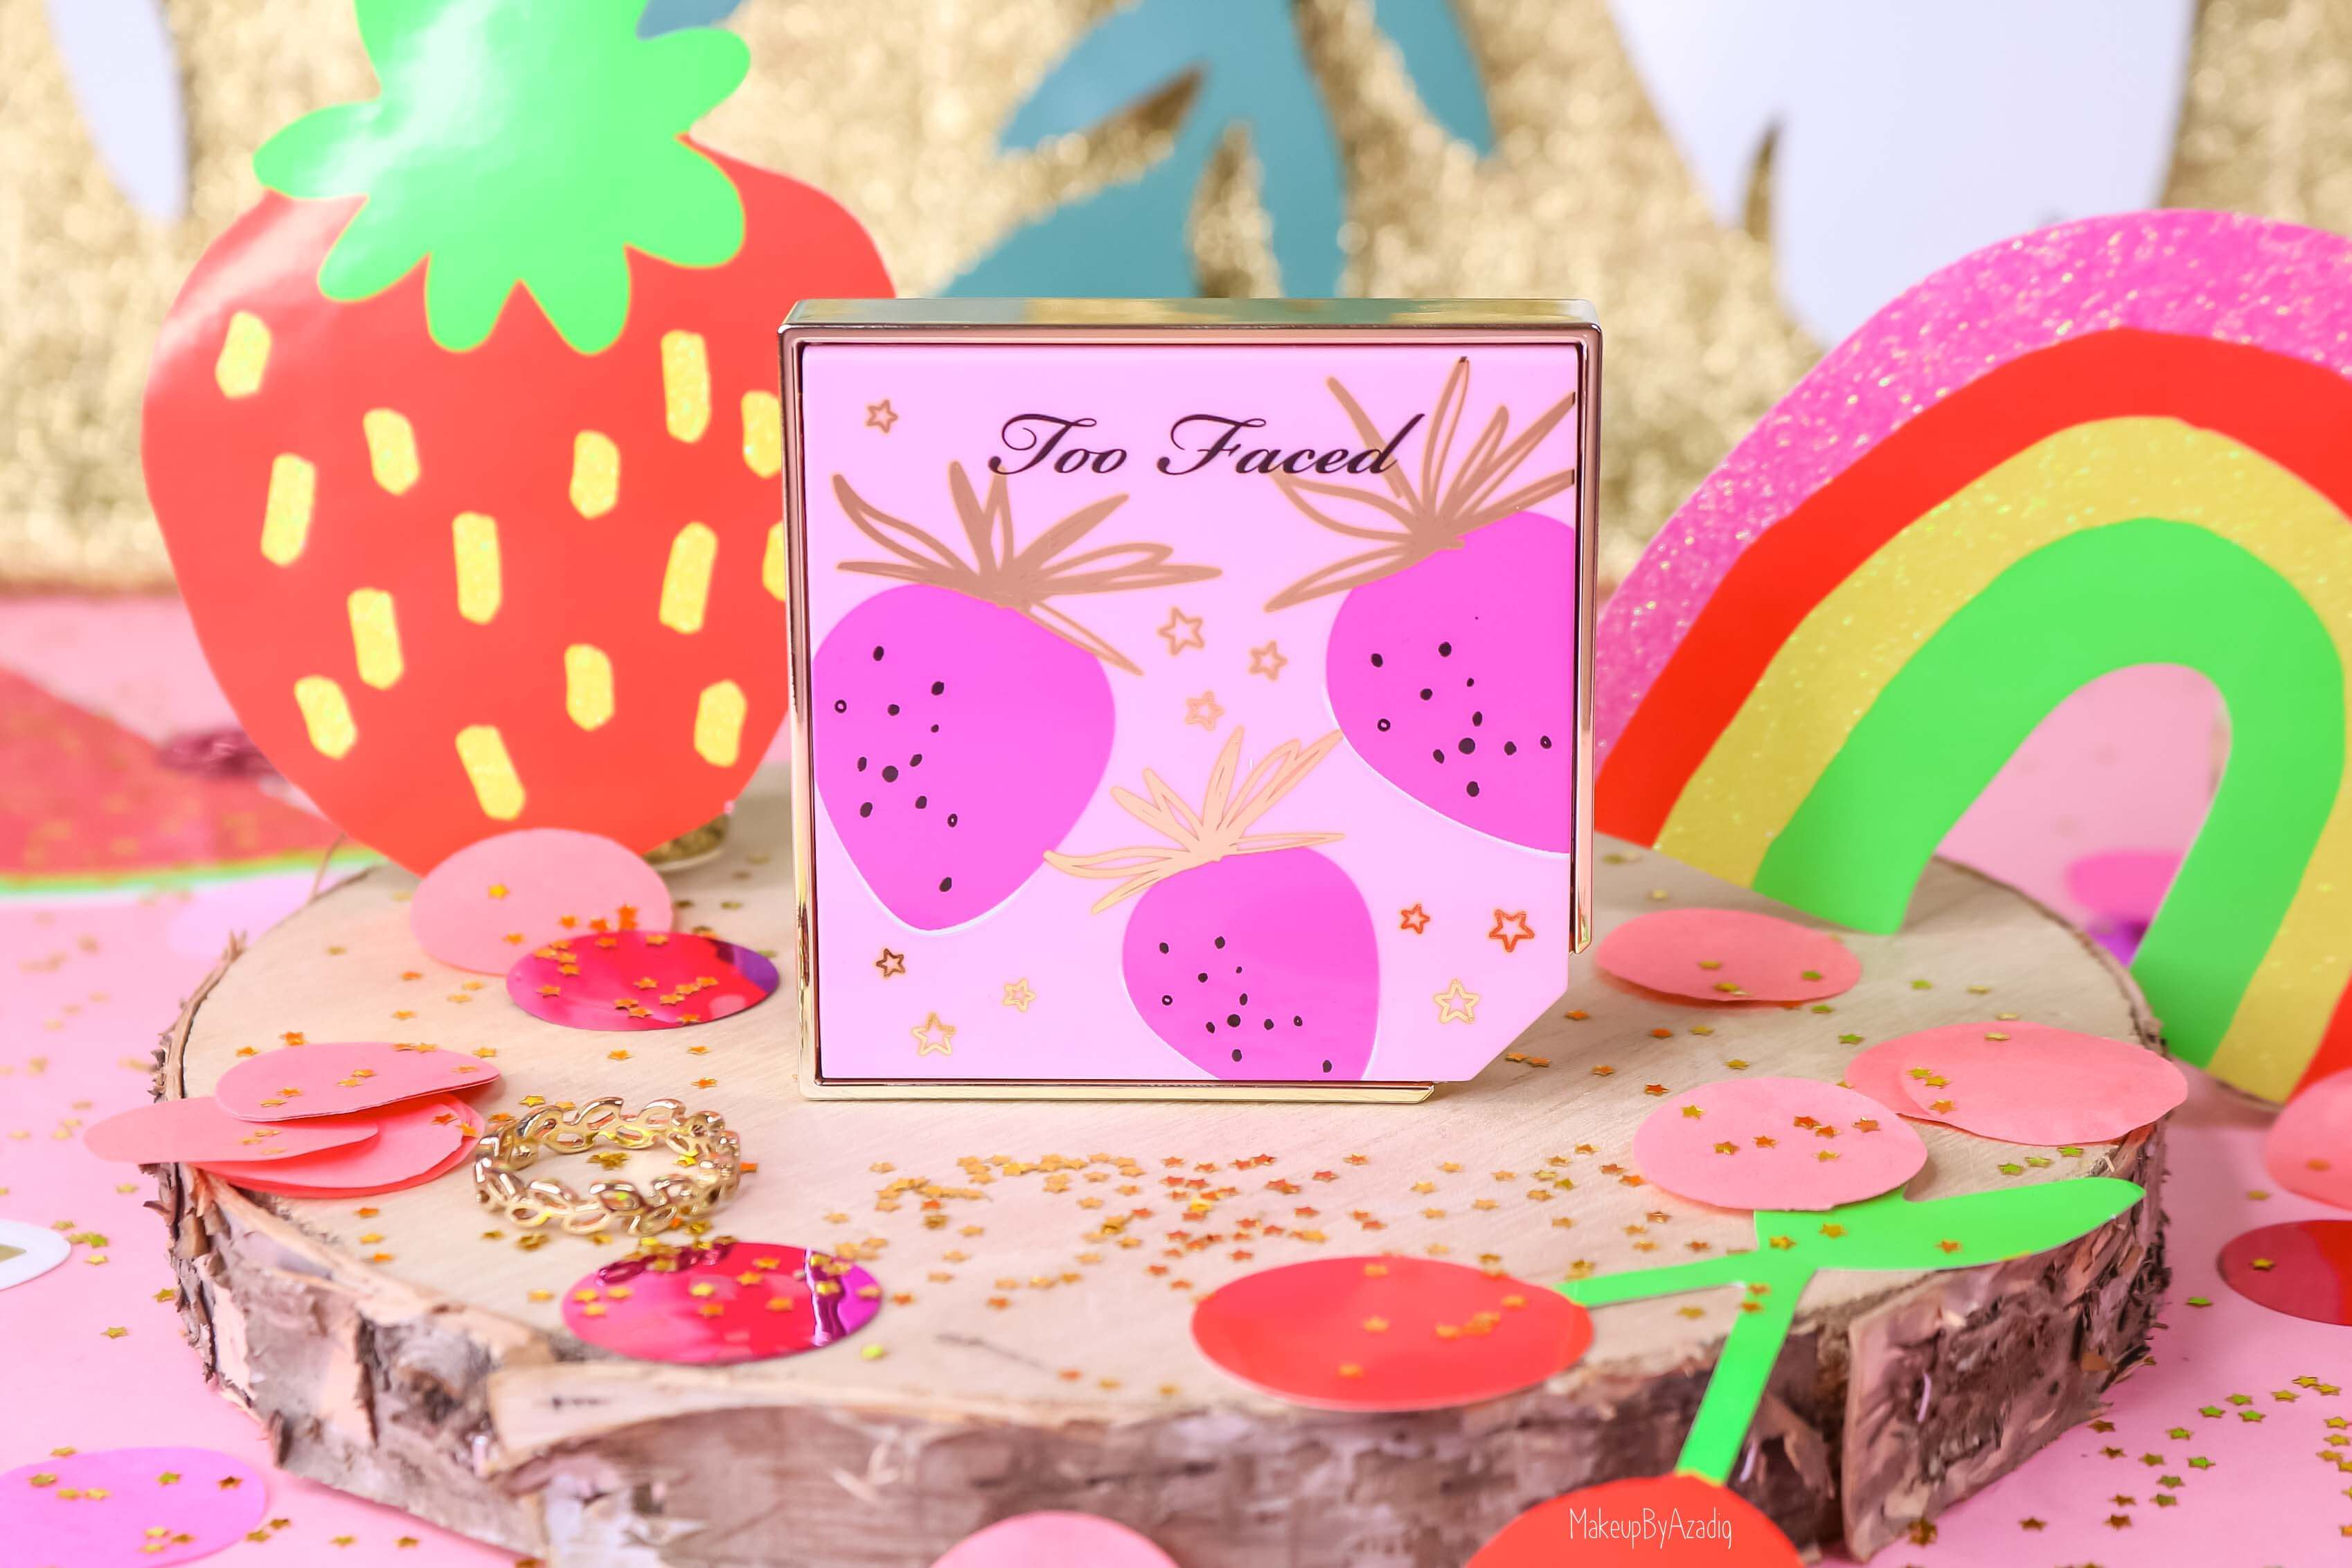 revue-collection-tutti-frutti-too-faced-blush-fruit-cocktail-strobeberry-sephora-france-makeupbyazadig-swatch-avis-prix-rose-summer